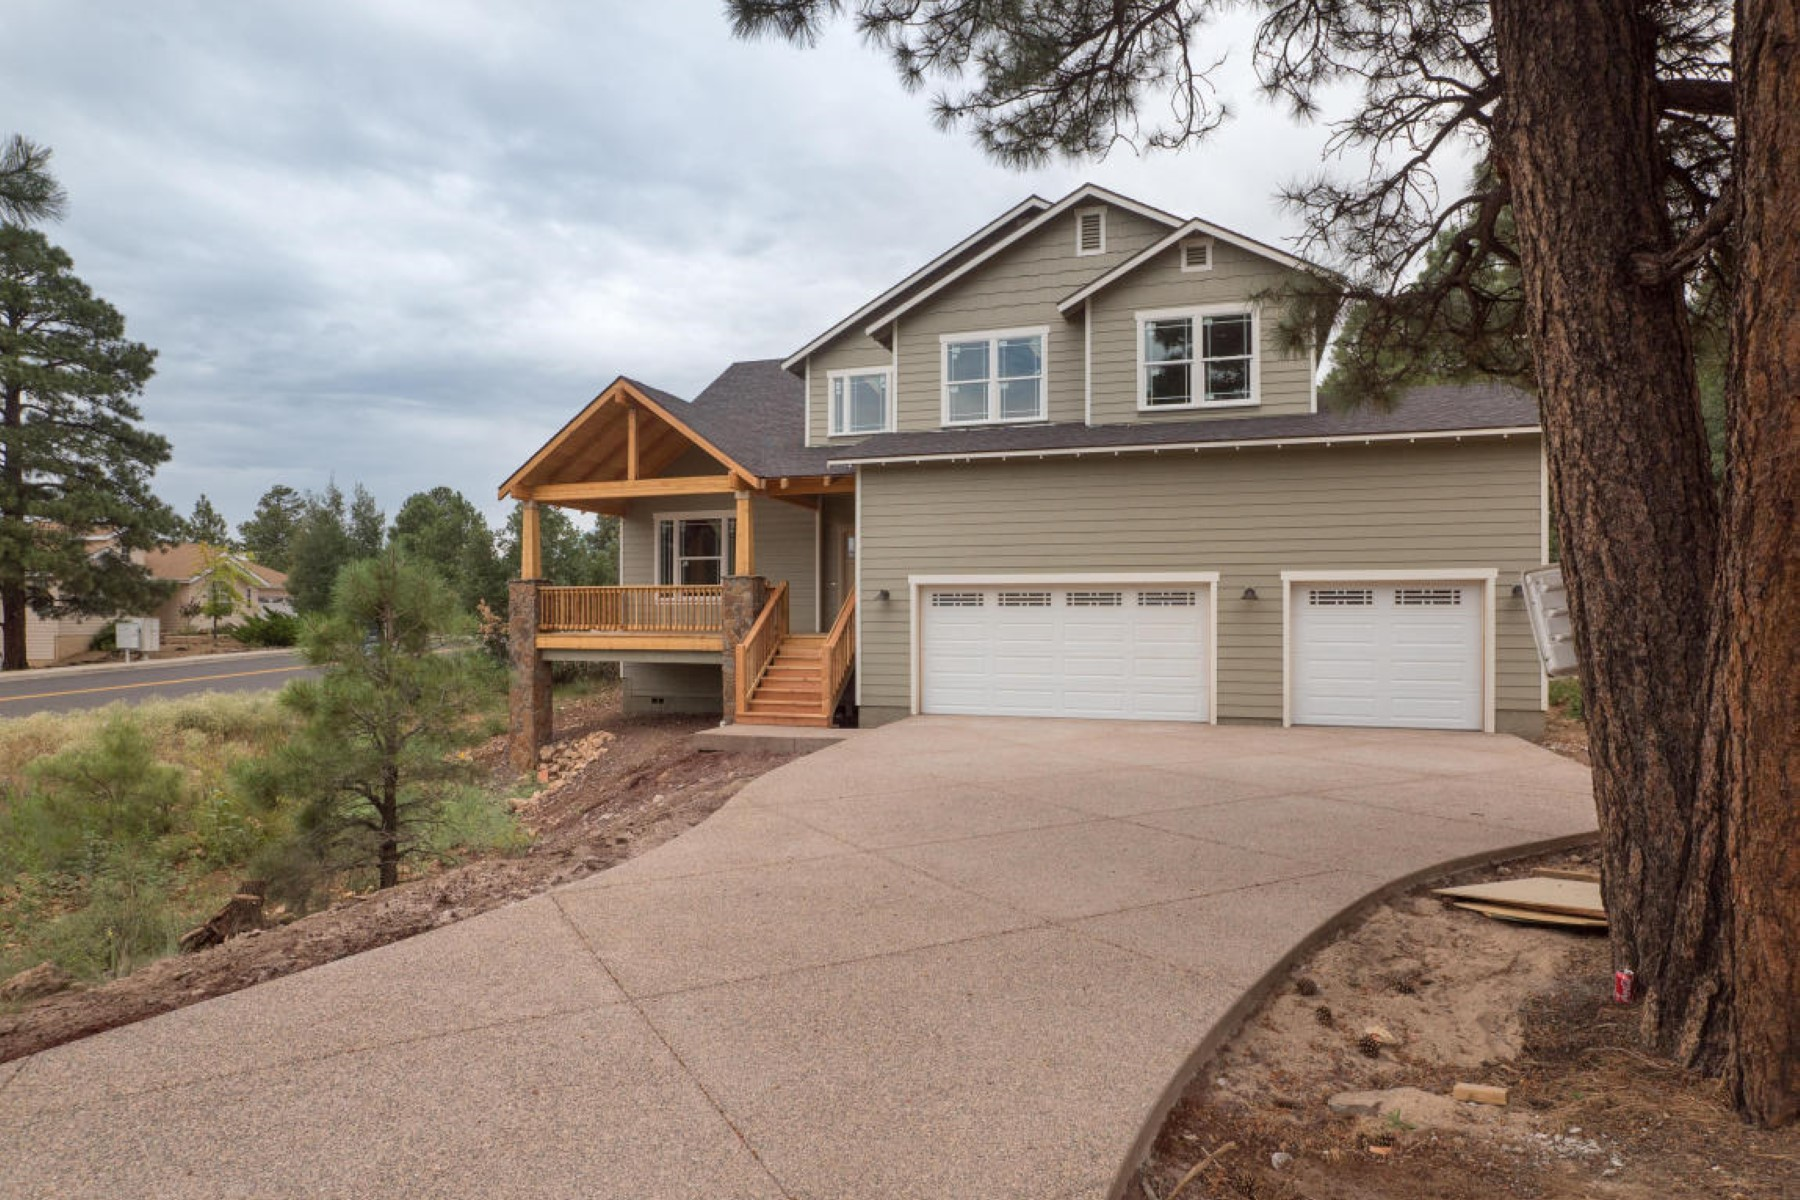 一戸建て のために 売買 アット Impressive Keepsake home by Holdsworth Construction sits on 3 acres. 3569 W Kiltie LN Flagstaff, アリゾナ 86005 アメリカ合衆国